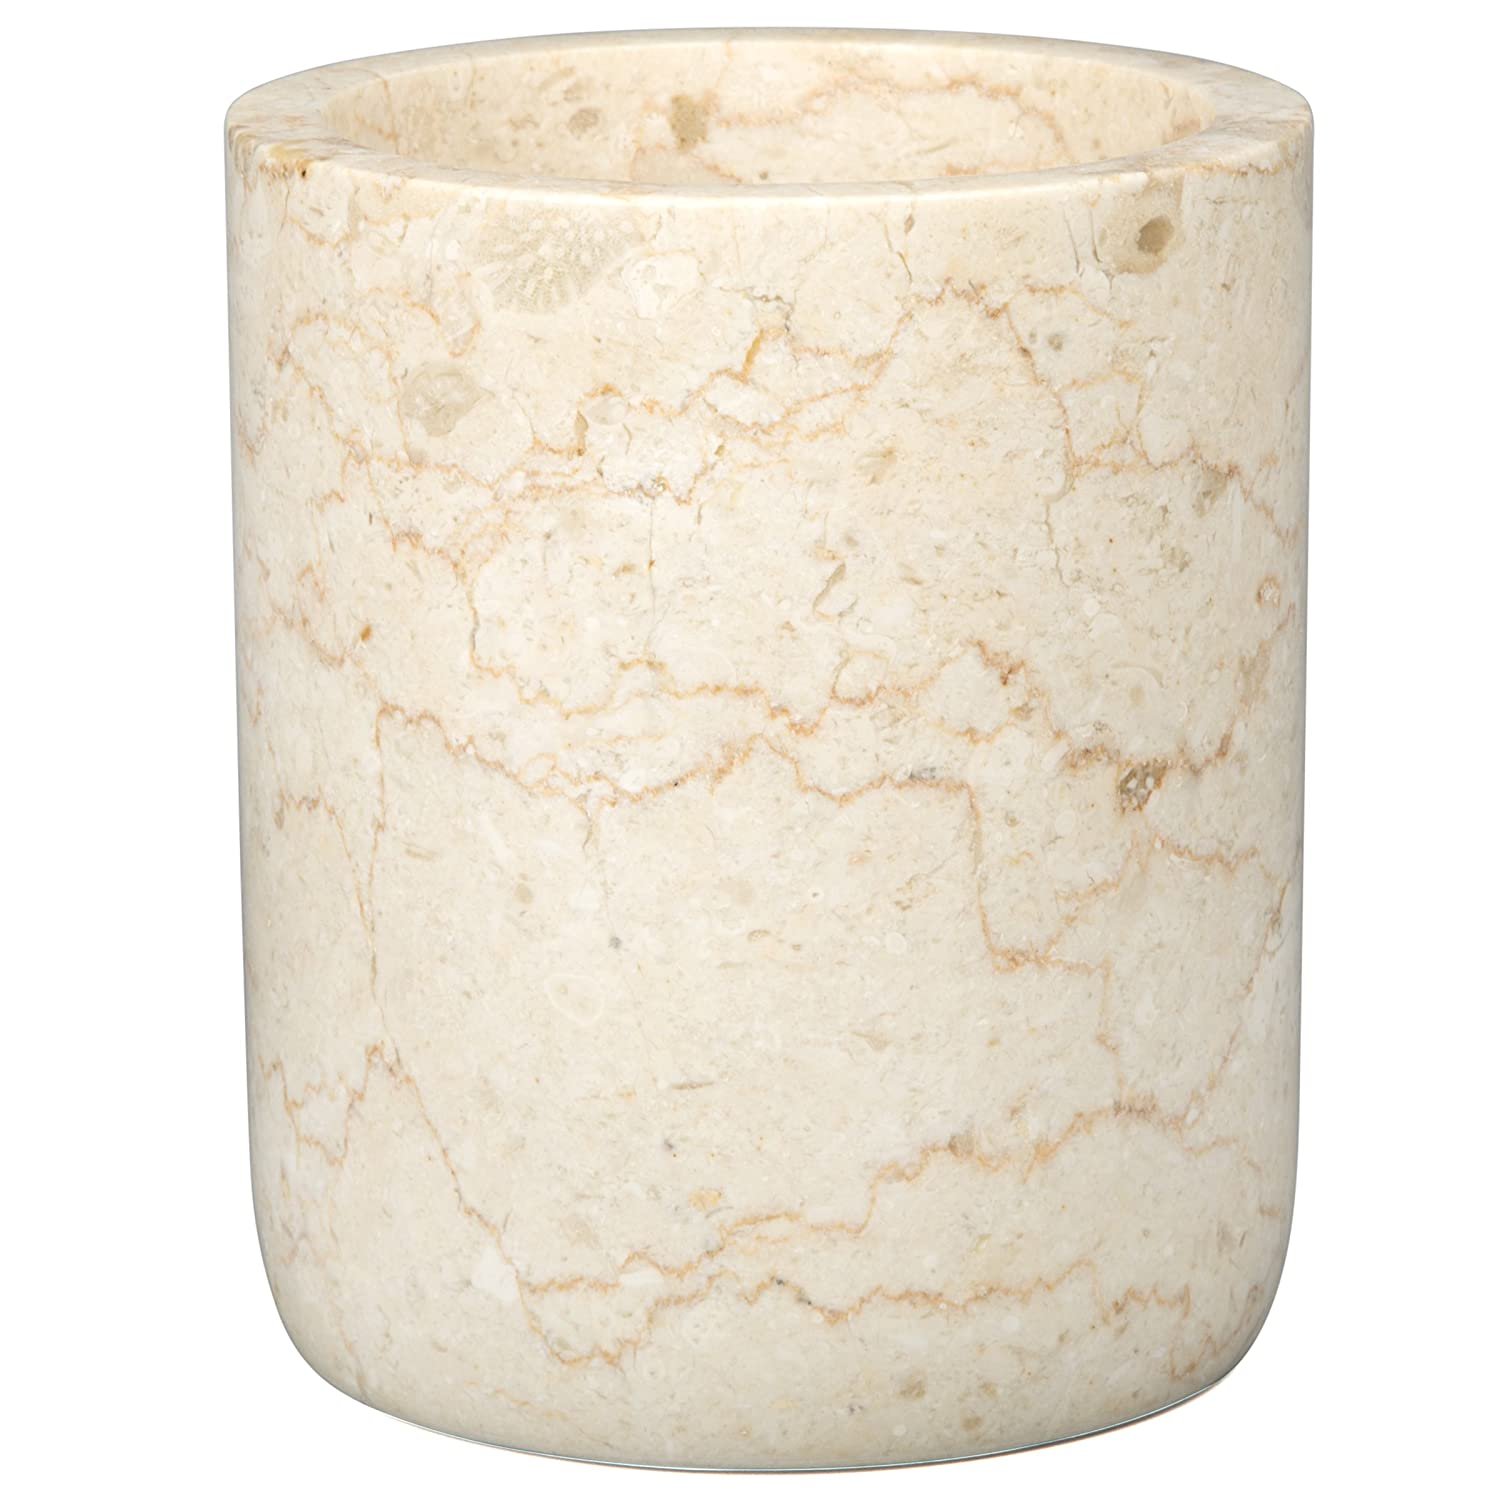 Creative Home Genuine Champagne Marble Stone Rounded Bottom Wine Cooler, Beige 74073